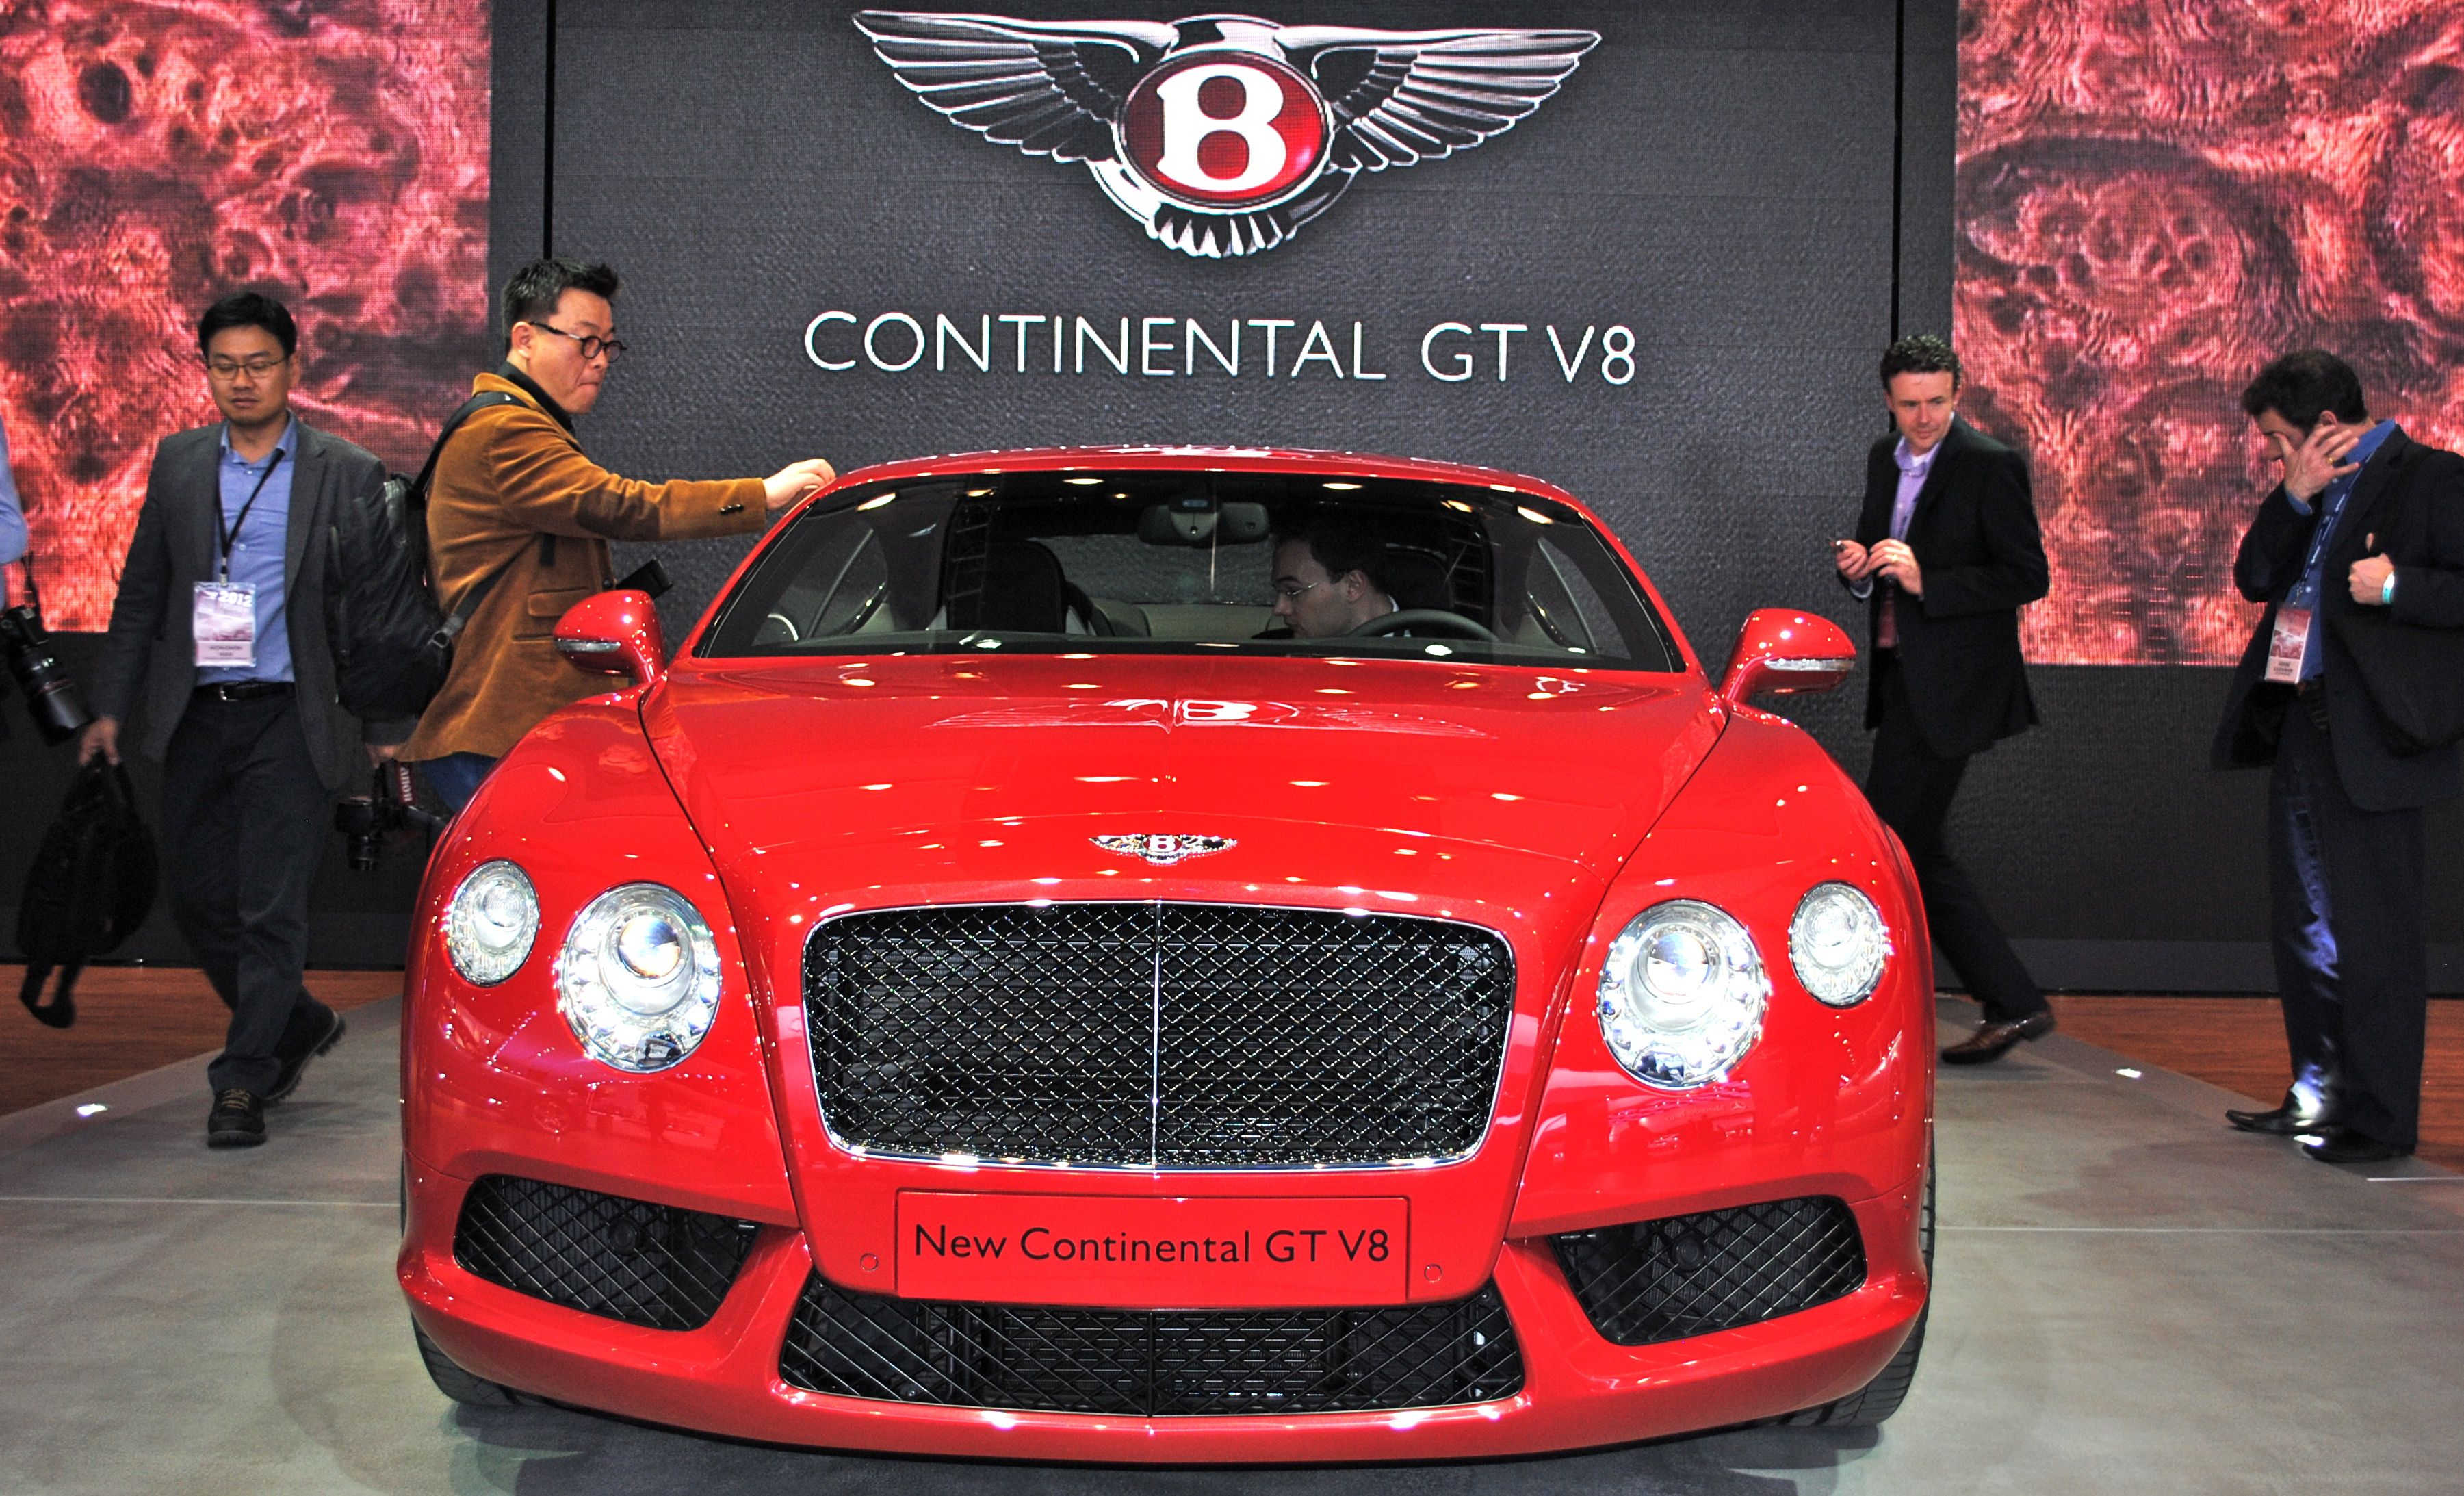 2012 Detroit: 2013 Bentley Continental GT V8